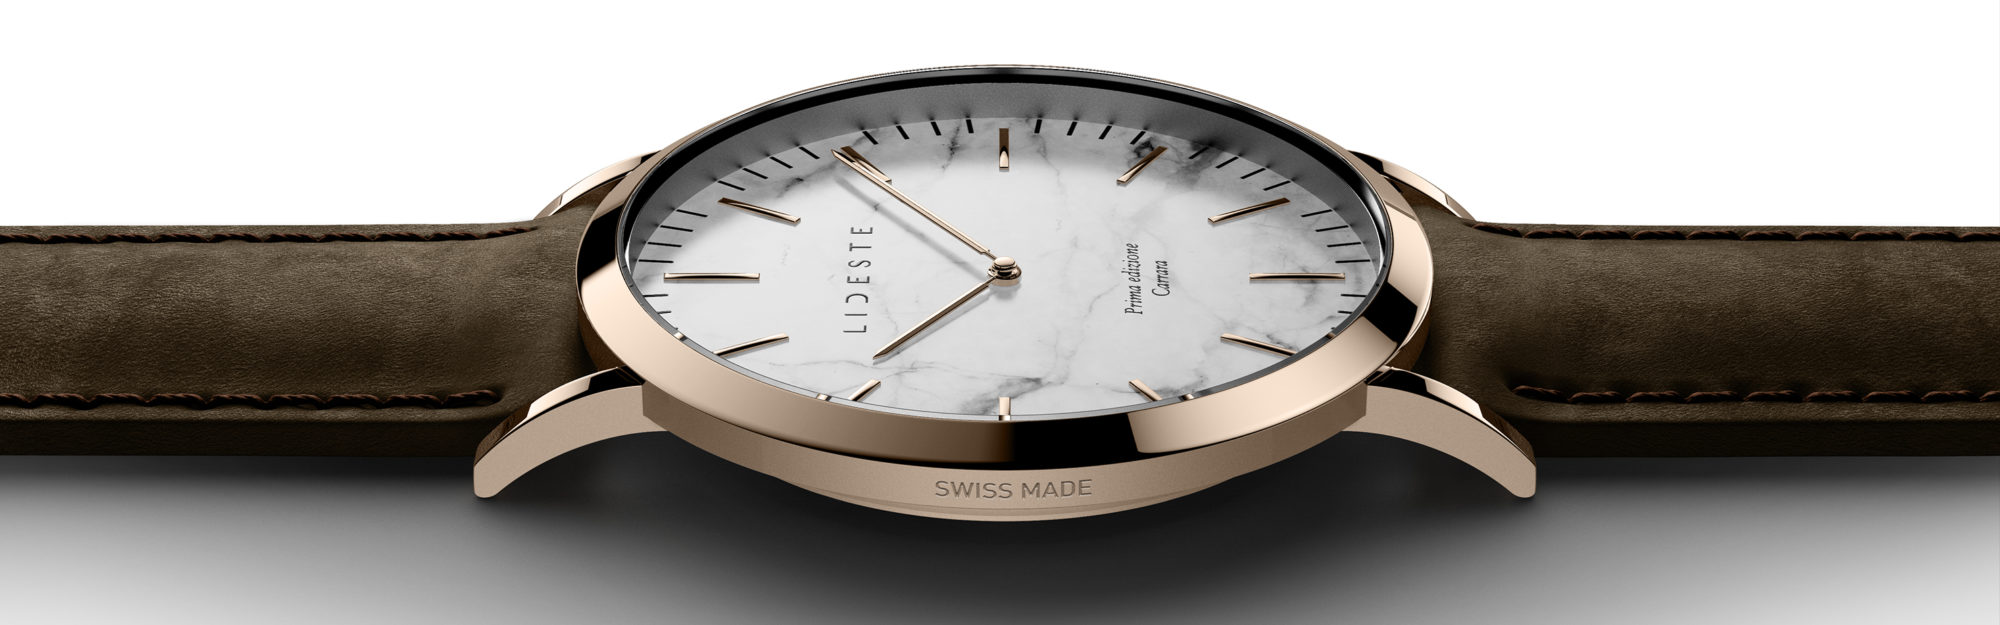 rose gold leather watch with brown leather strap for men and women